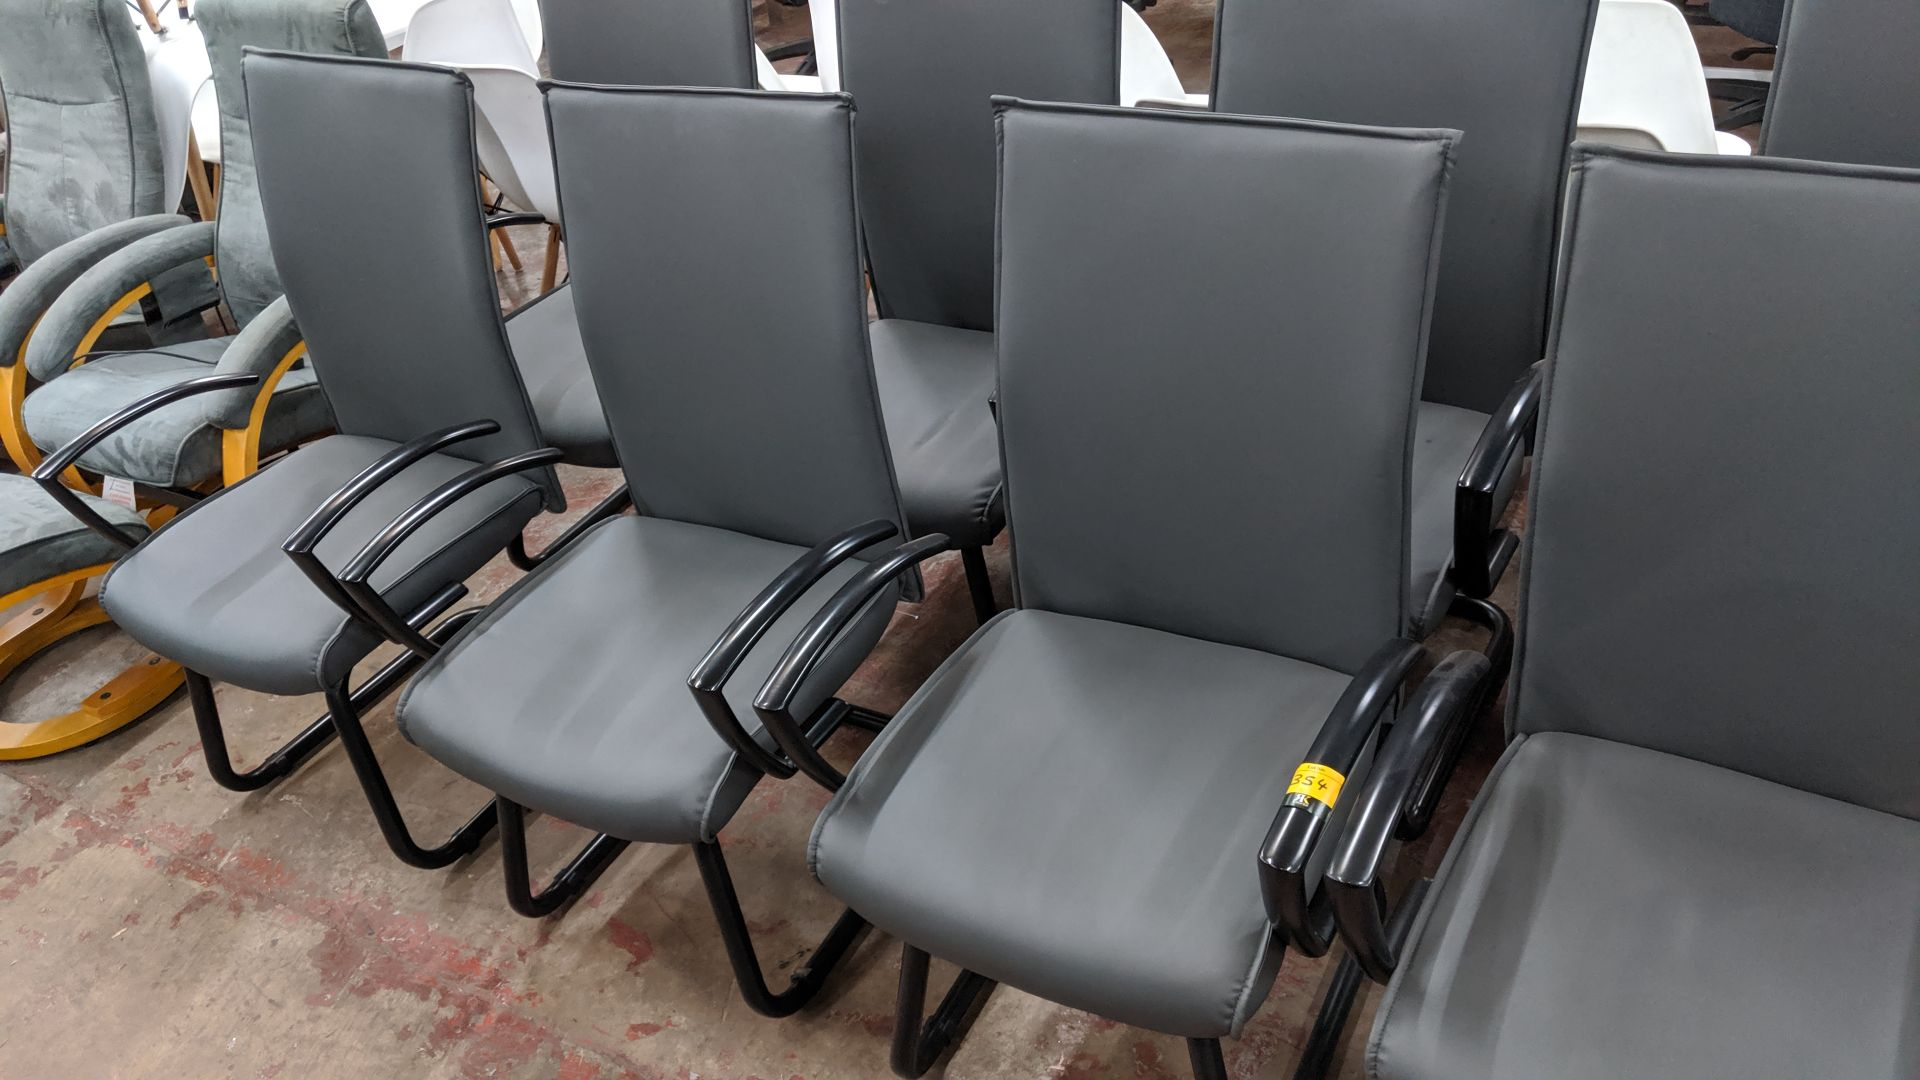 Lot 354 - 6 off black metal cantilever framed executive/meeting chairs with grey leather-look upholstery NB.